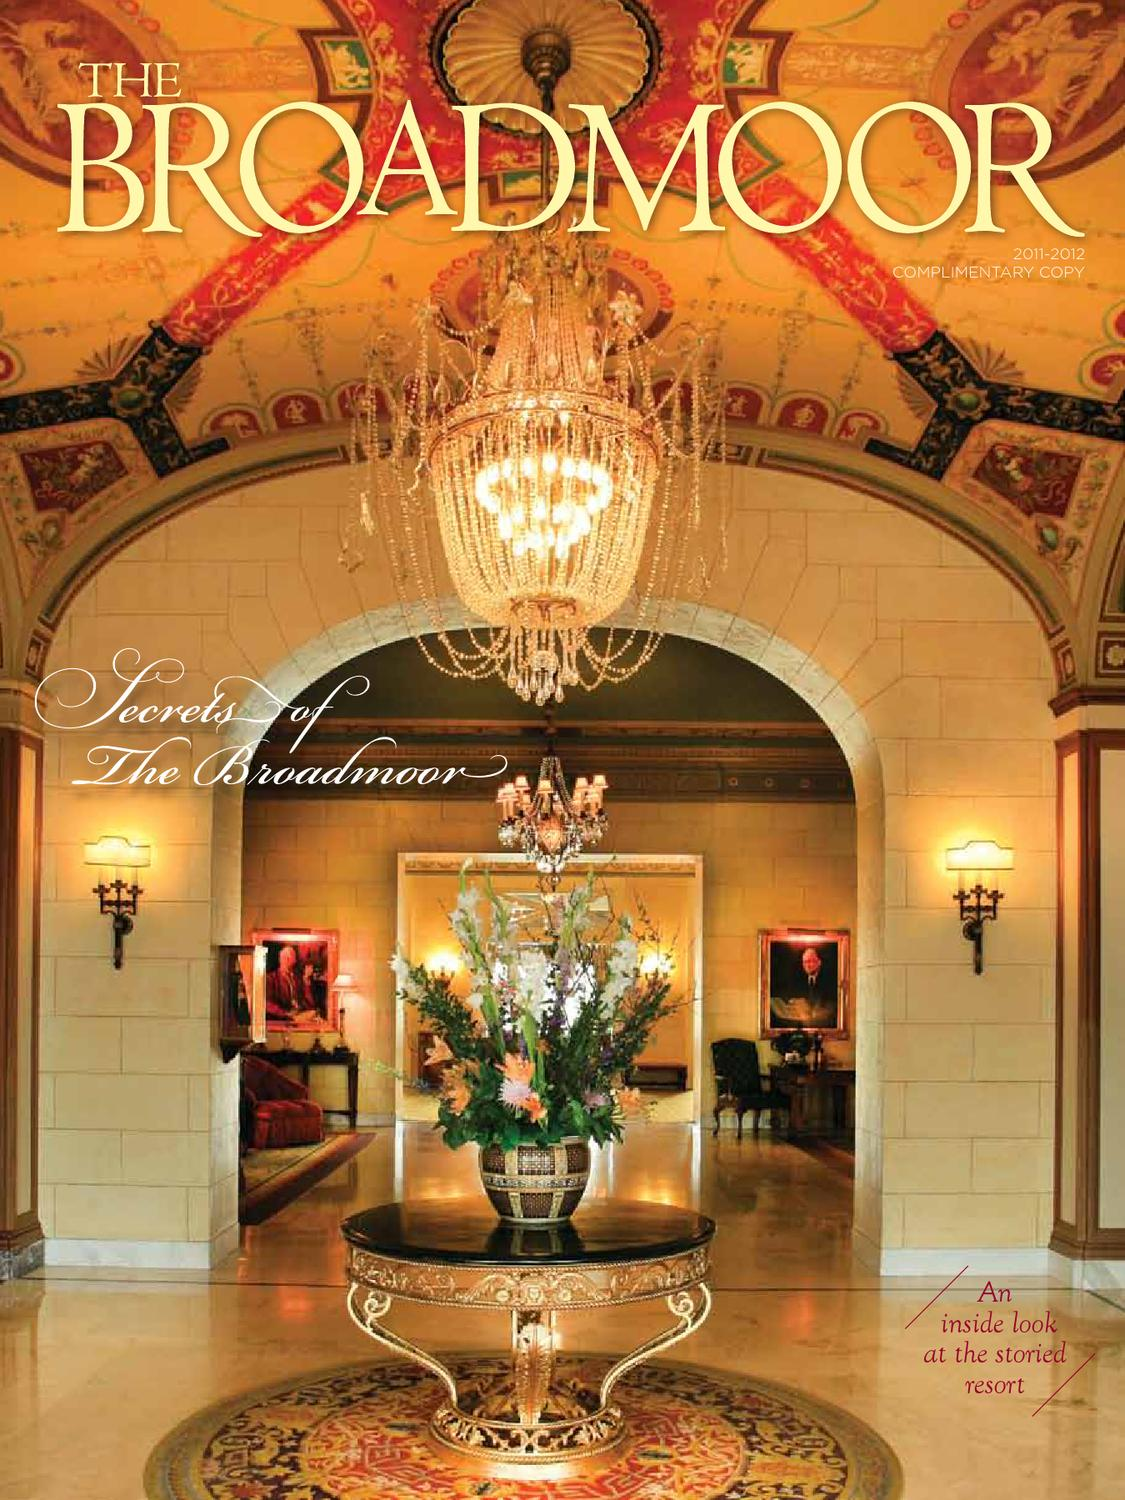 The Broadmoor Magazine 2011 2012 By Hungry Eye Media Issuu